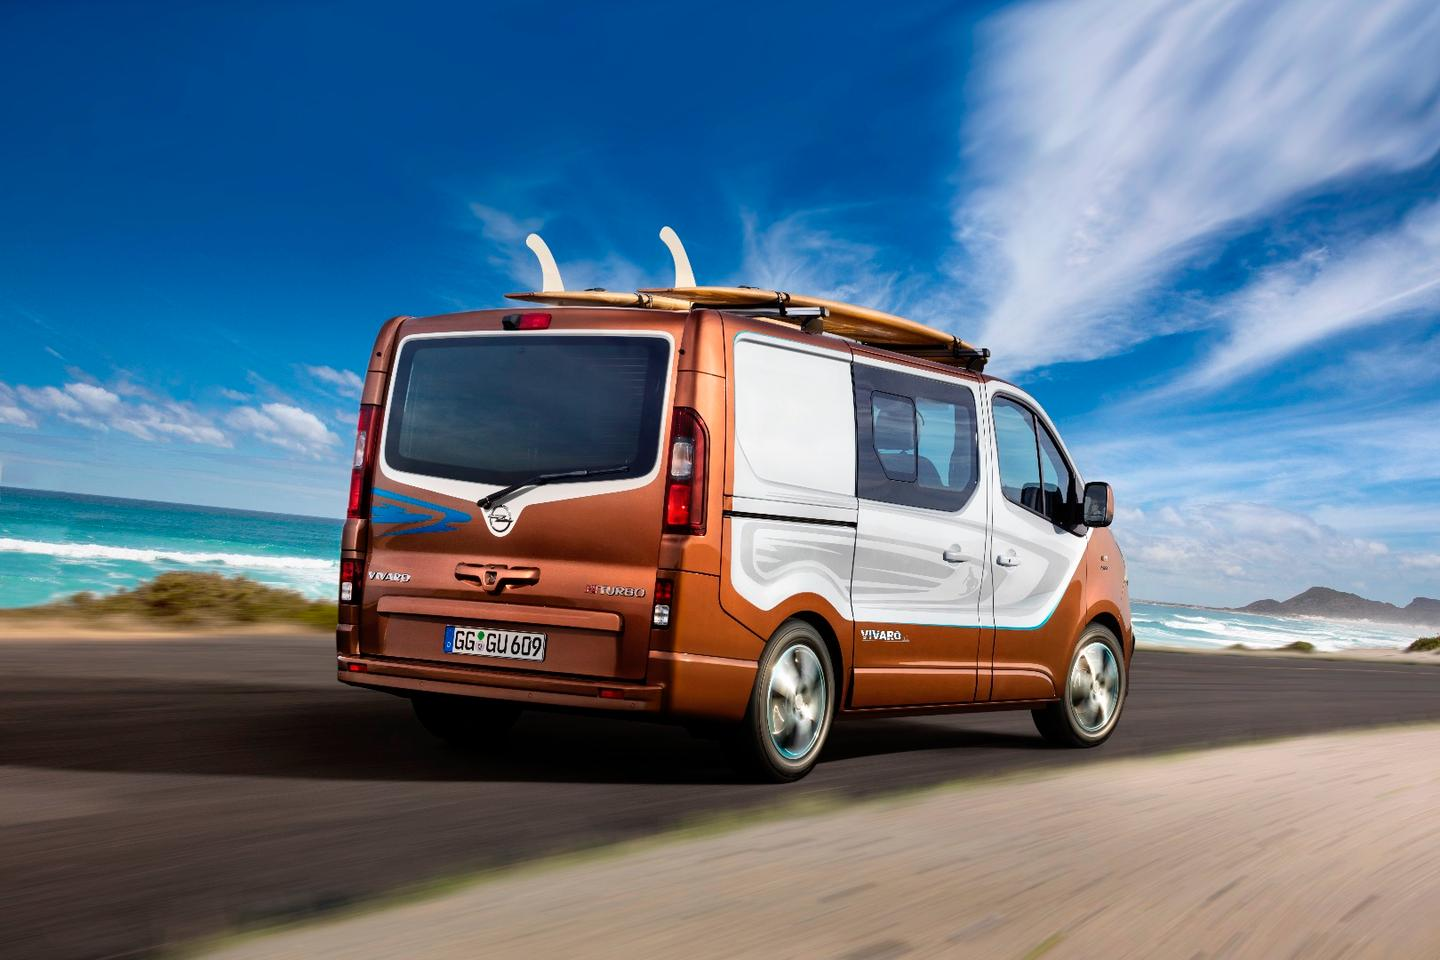 The Vivaro Surf has a board rack up top